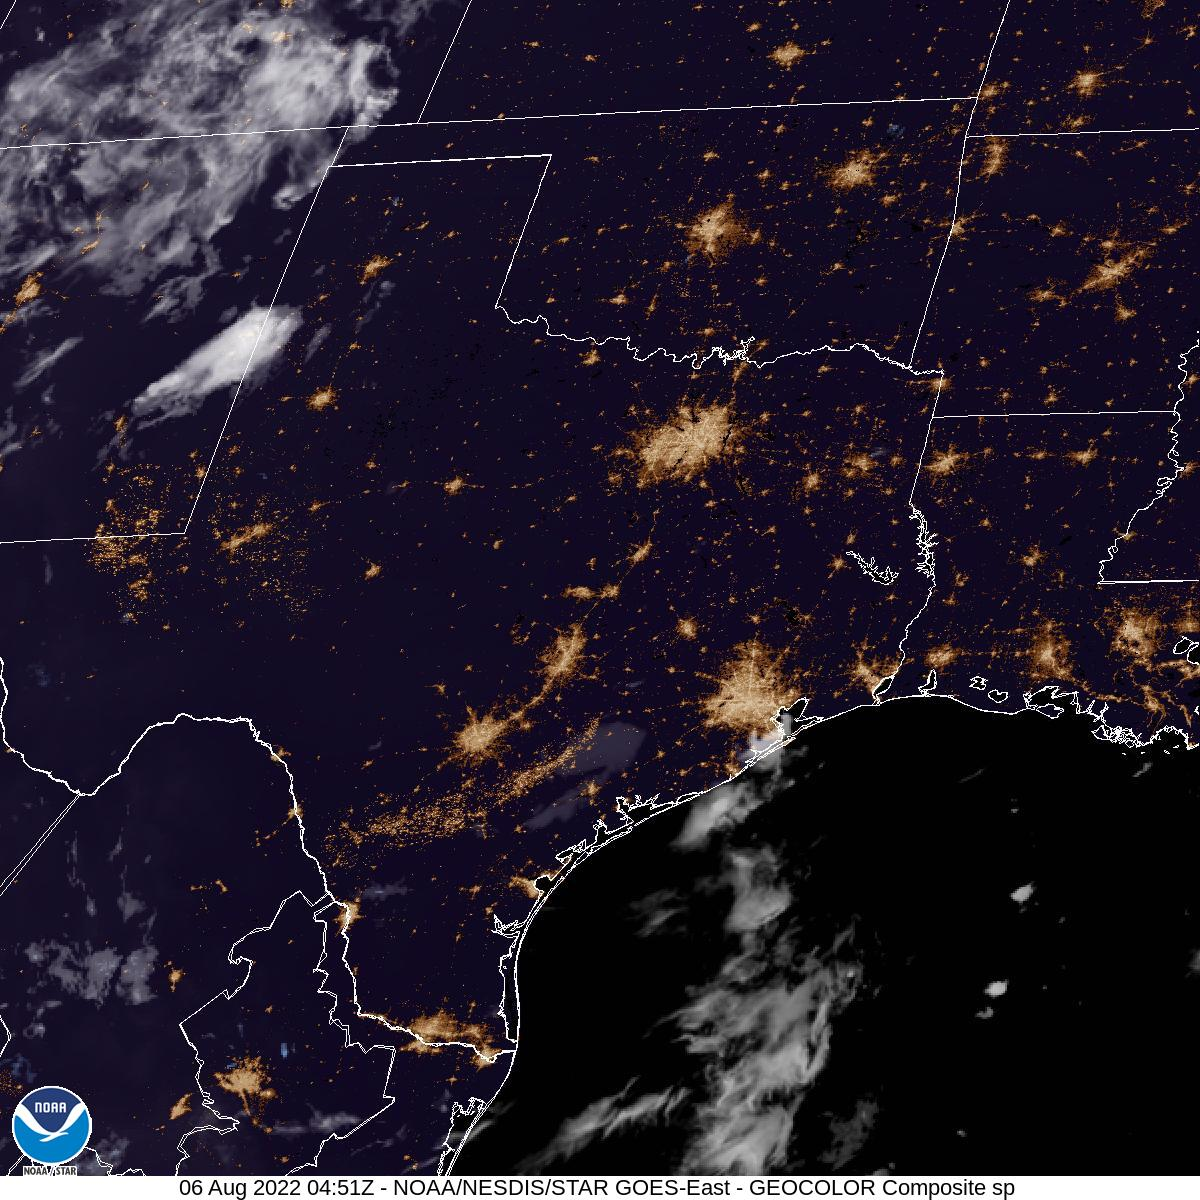 Latest GOES-16 Geocolor Image of Southern Plains sector